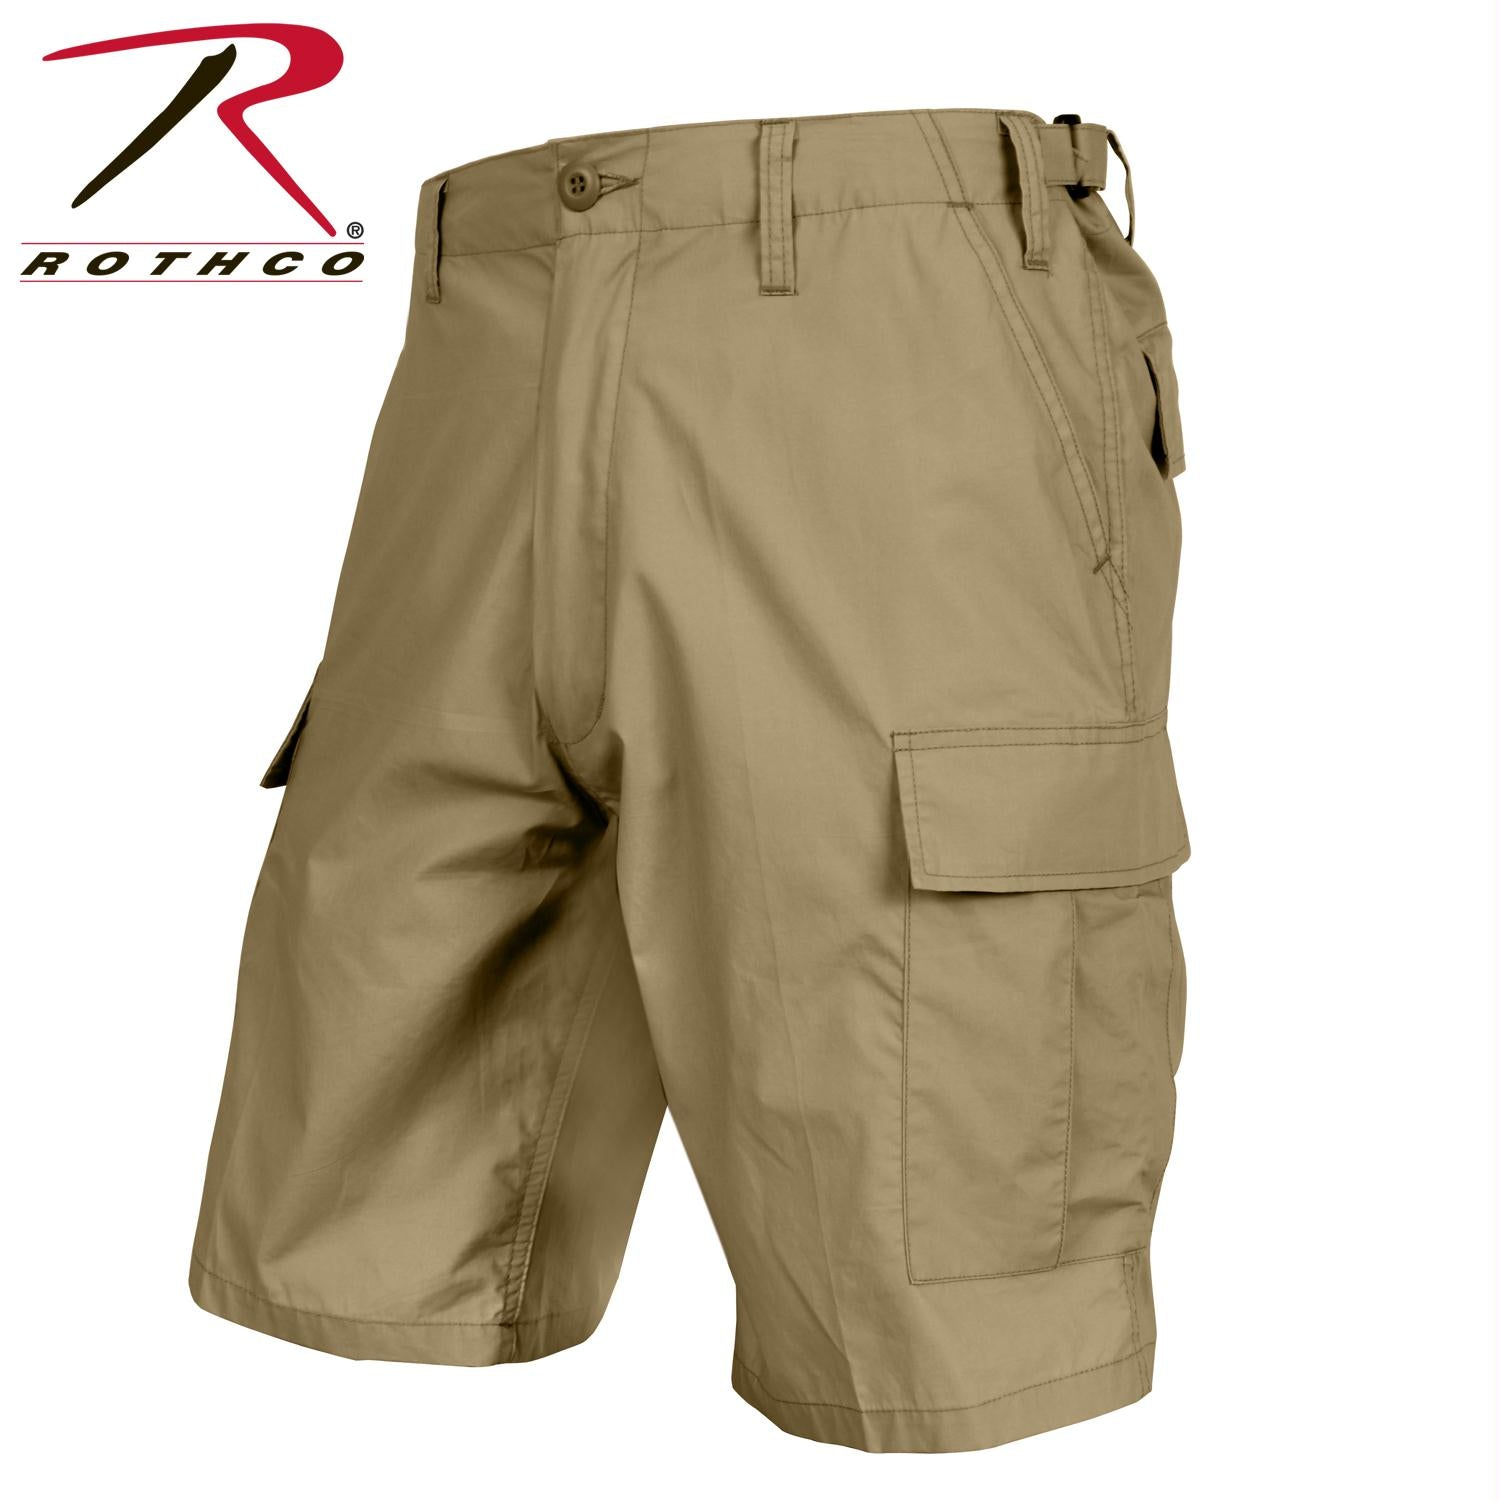 Rothco Lightweight Tactical BDU Shorts